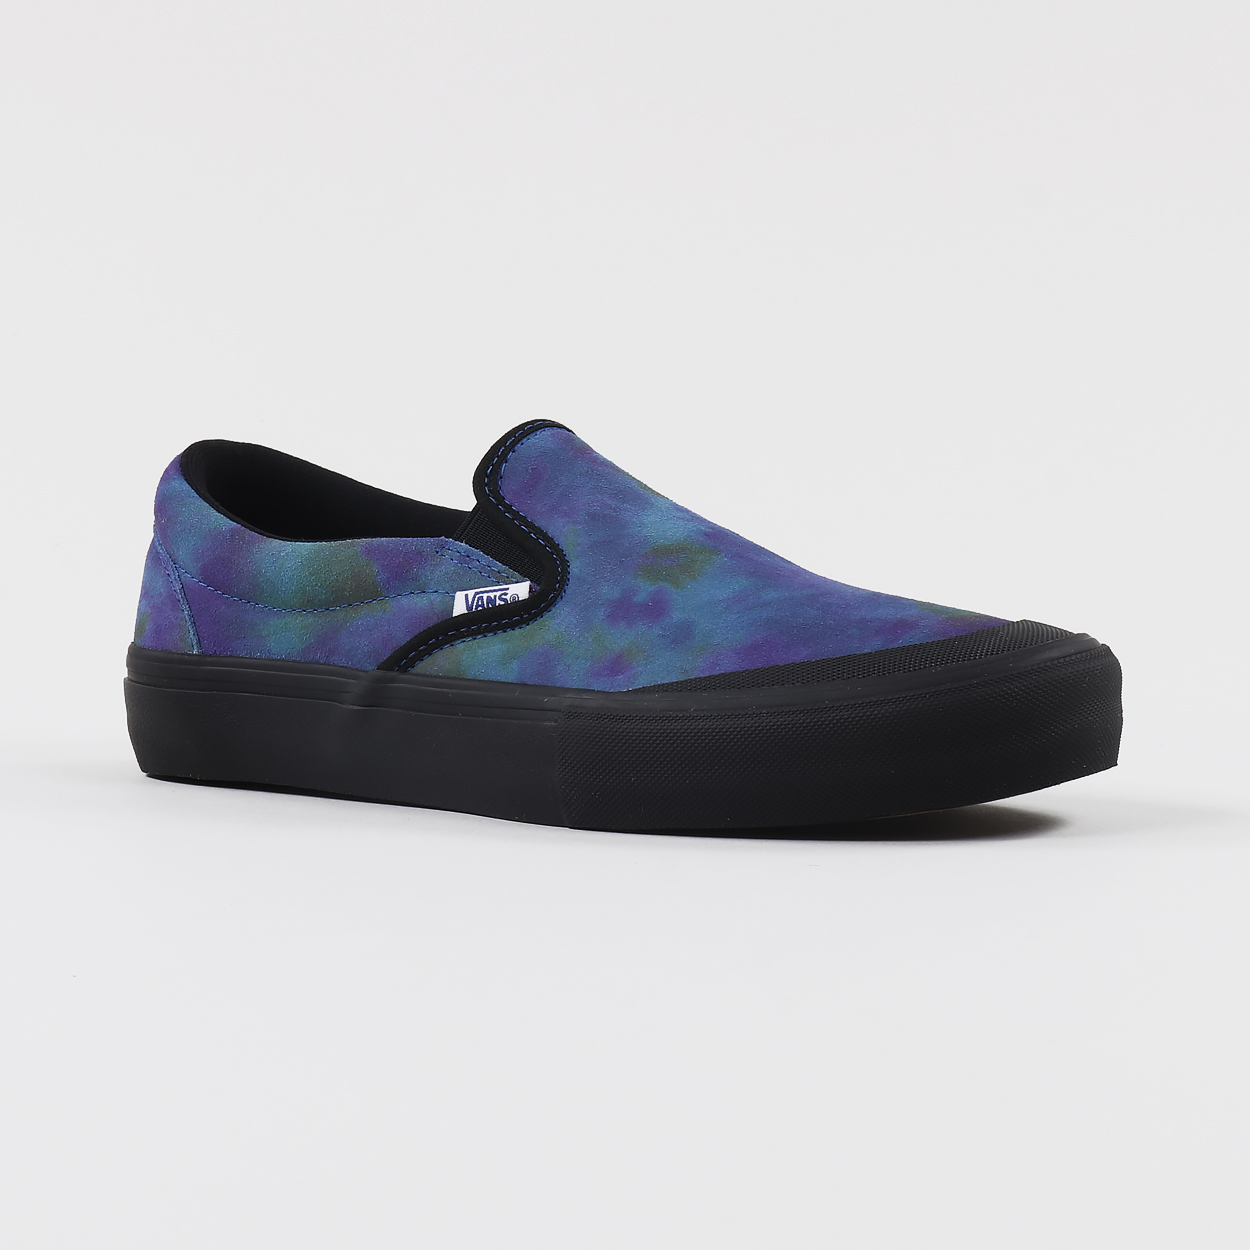 5632f46318af2f A pair of Vans  iconic Slip-On shoes from the Pro Skate range in a special  colourway for skater Ronnie Sandoval. Made from tough and durable  materials